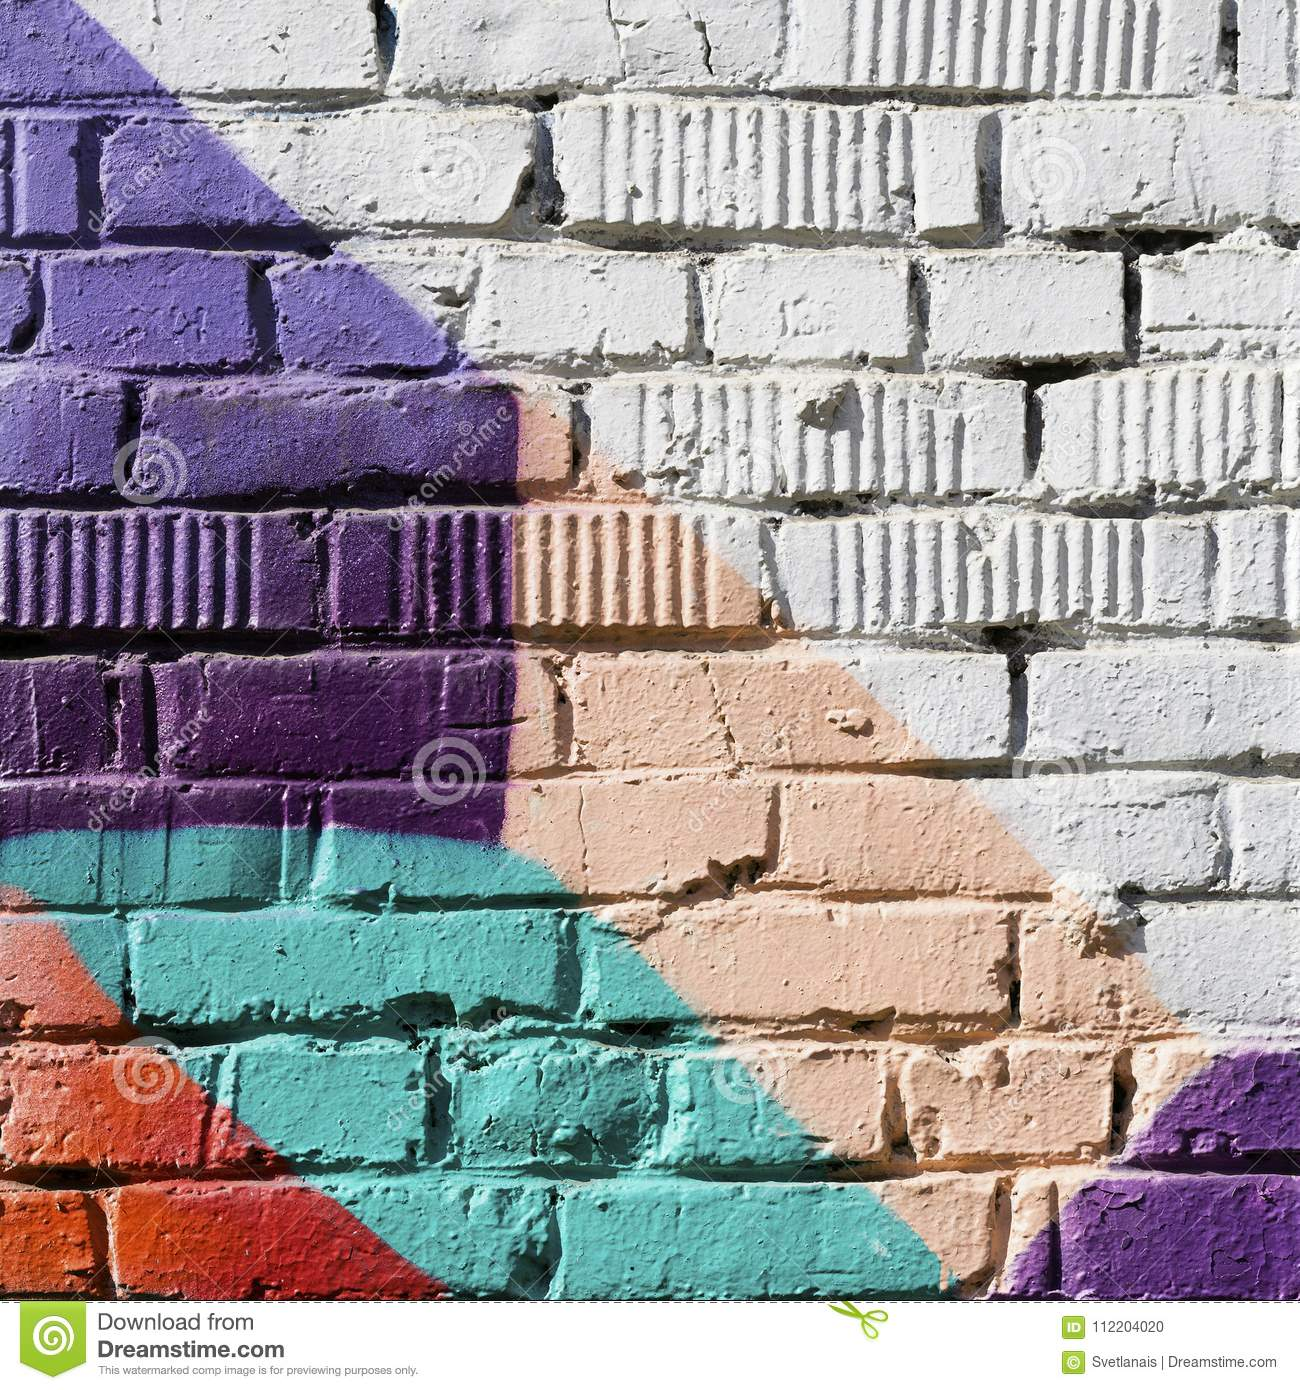 Abstract detail of brick wall with fragment of colorful graffiti. Urban Art close-up. With place for your text, for